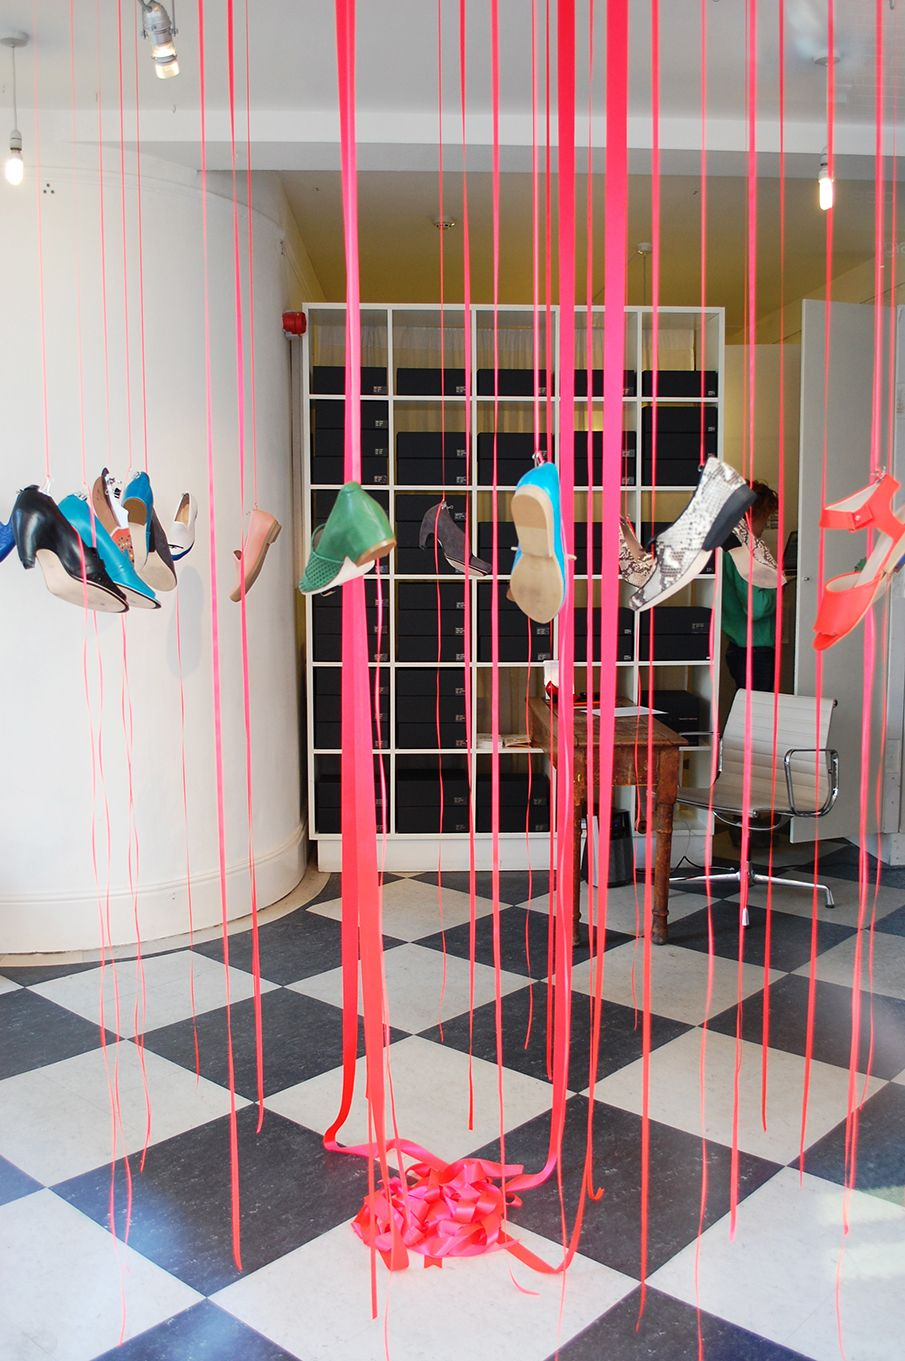 Hanging shoes in pink strings